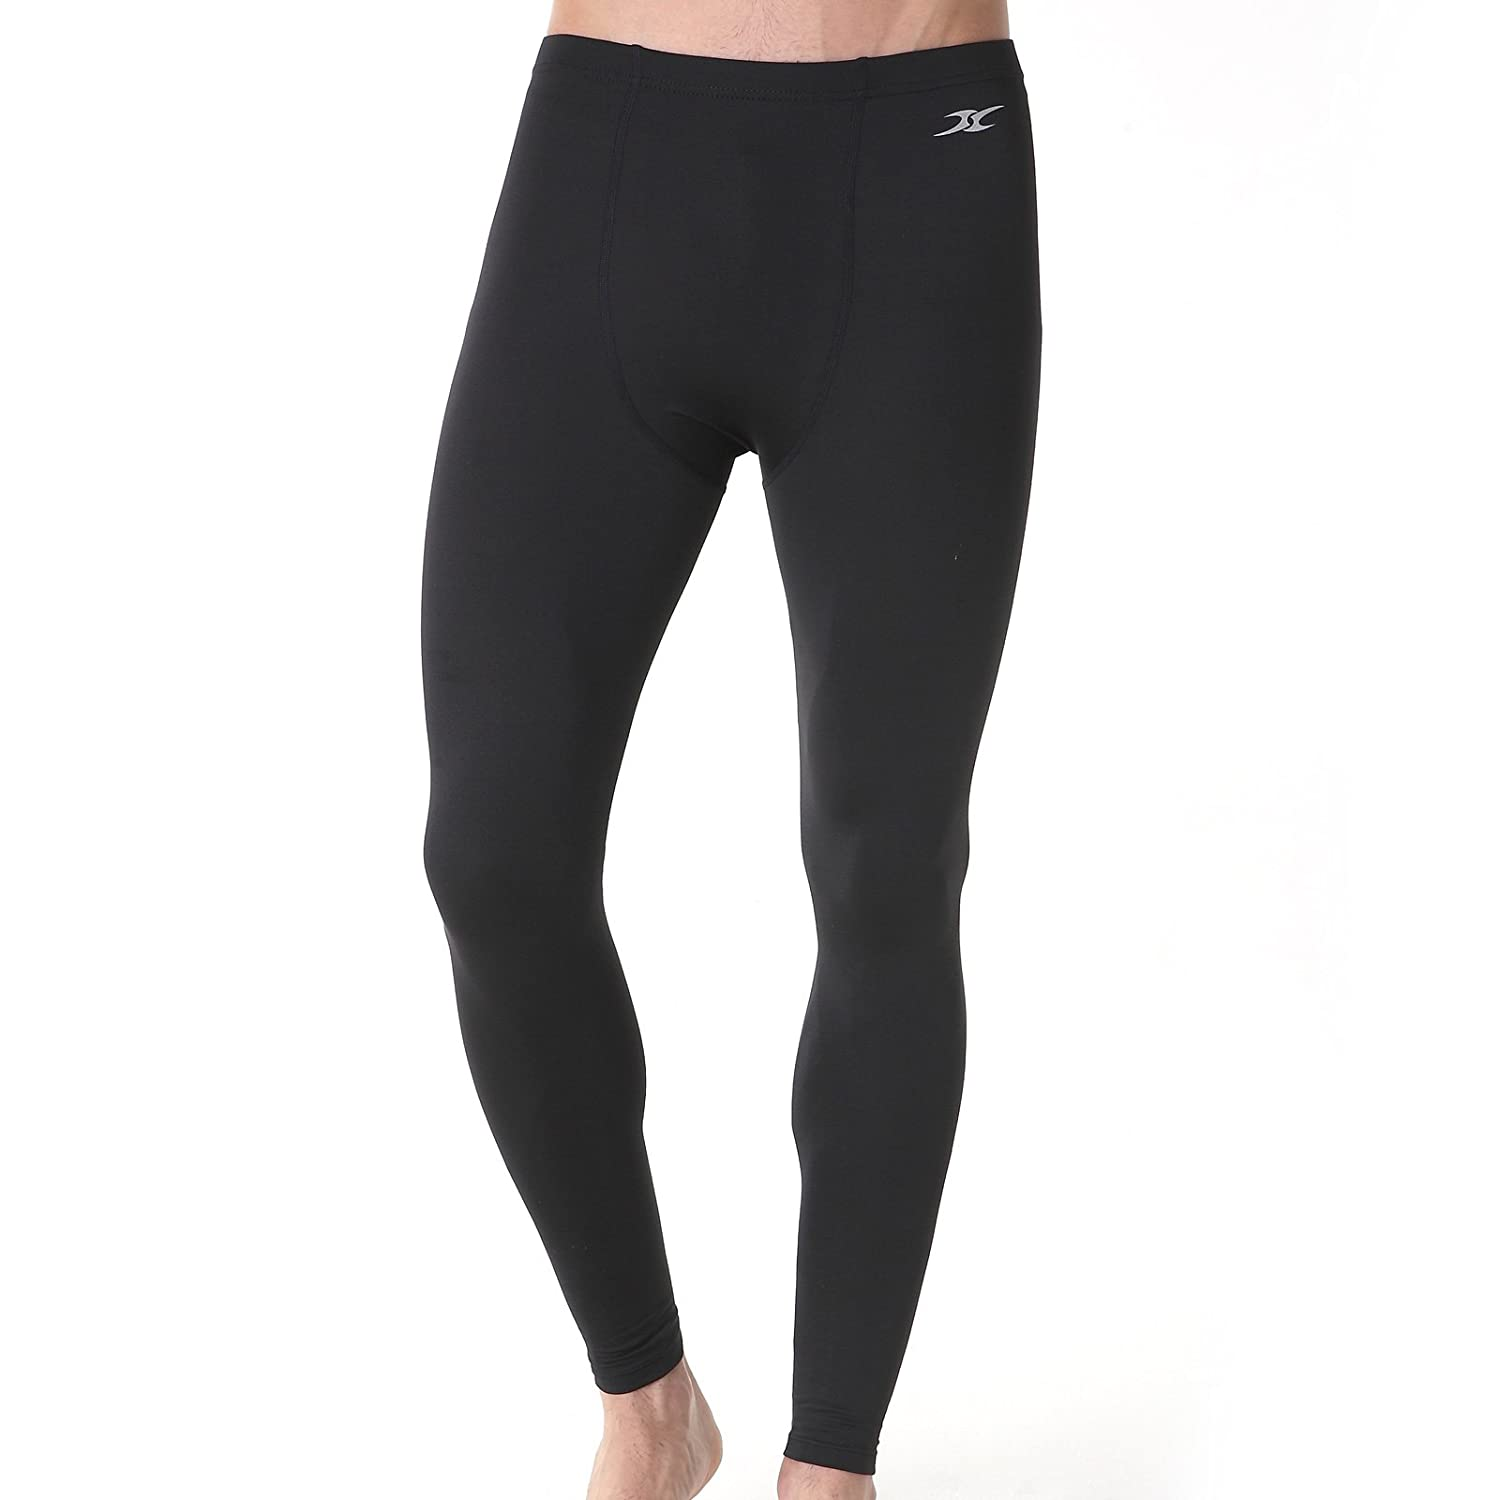 c1528a1f7fb Amazon.com  Mens Skin tight Compression Under Base Layer Sports Long Pants  Leggings PS  Clothing